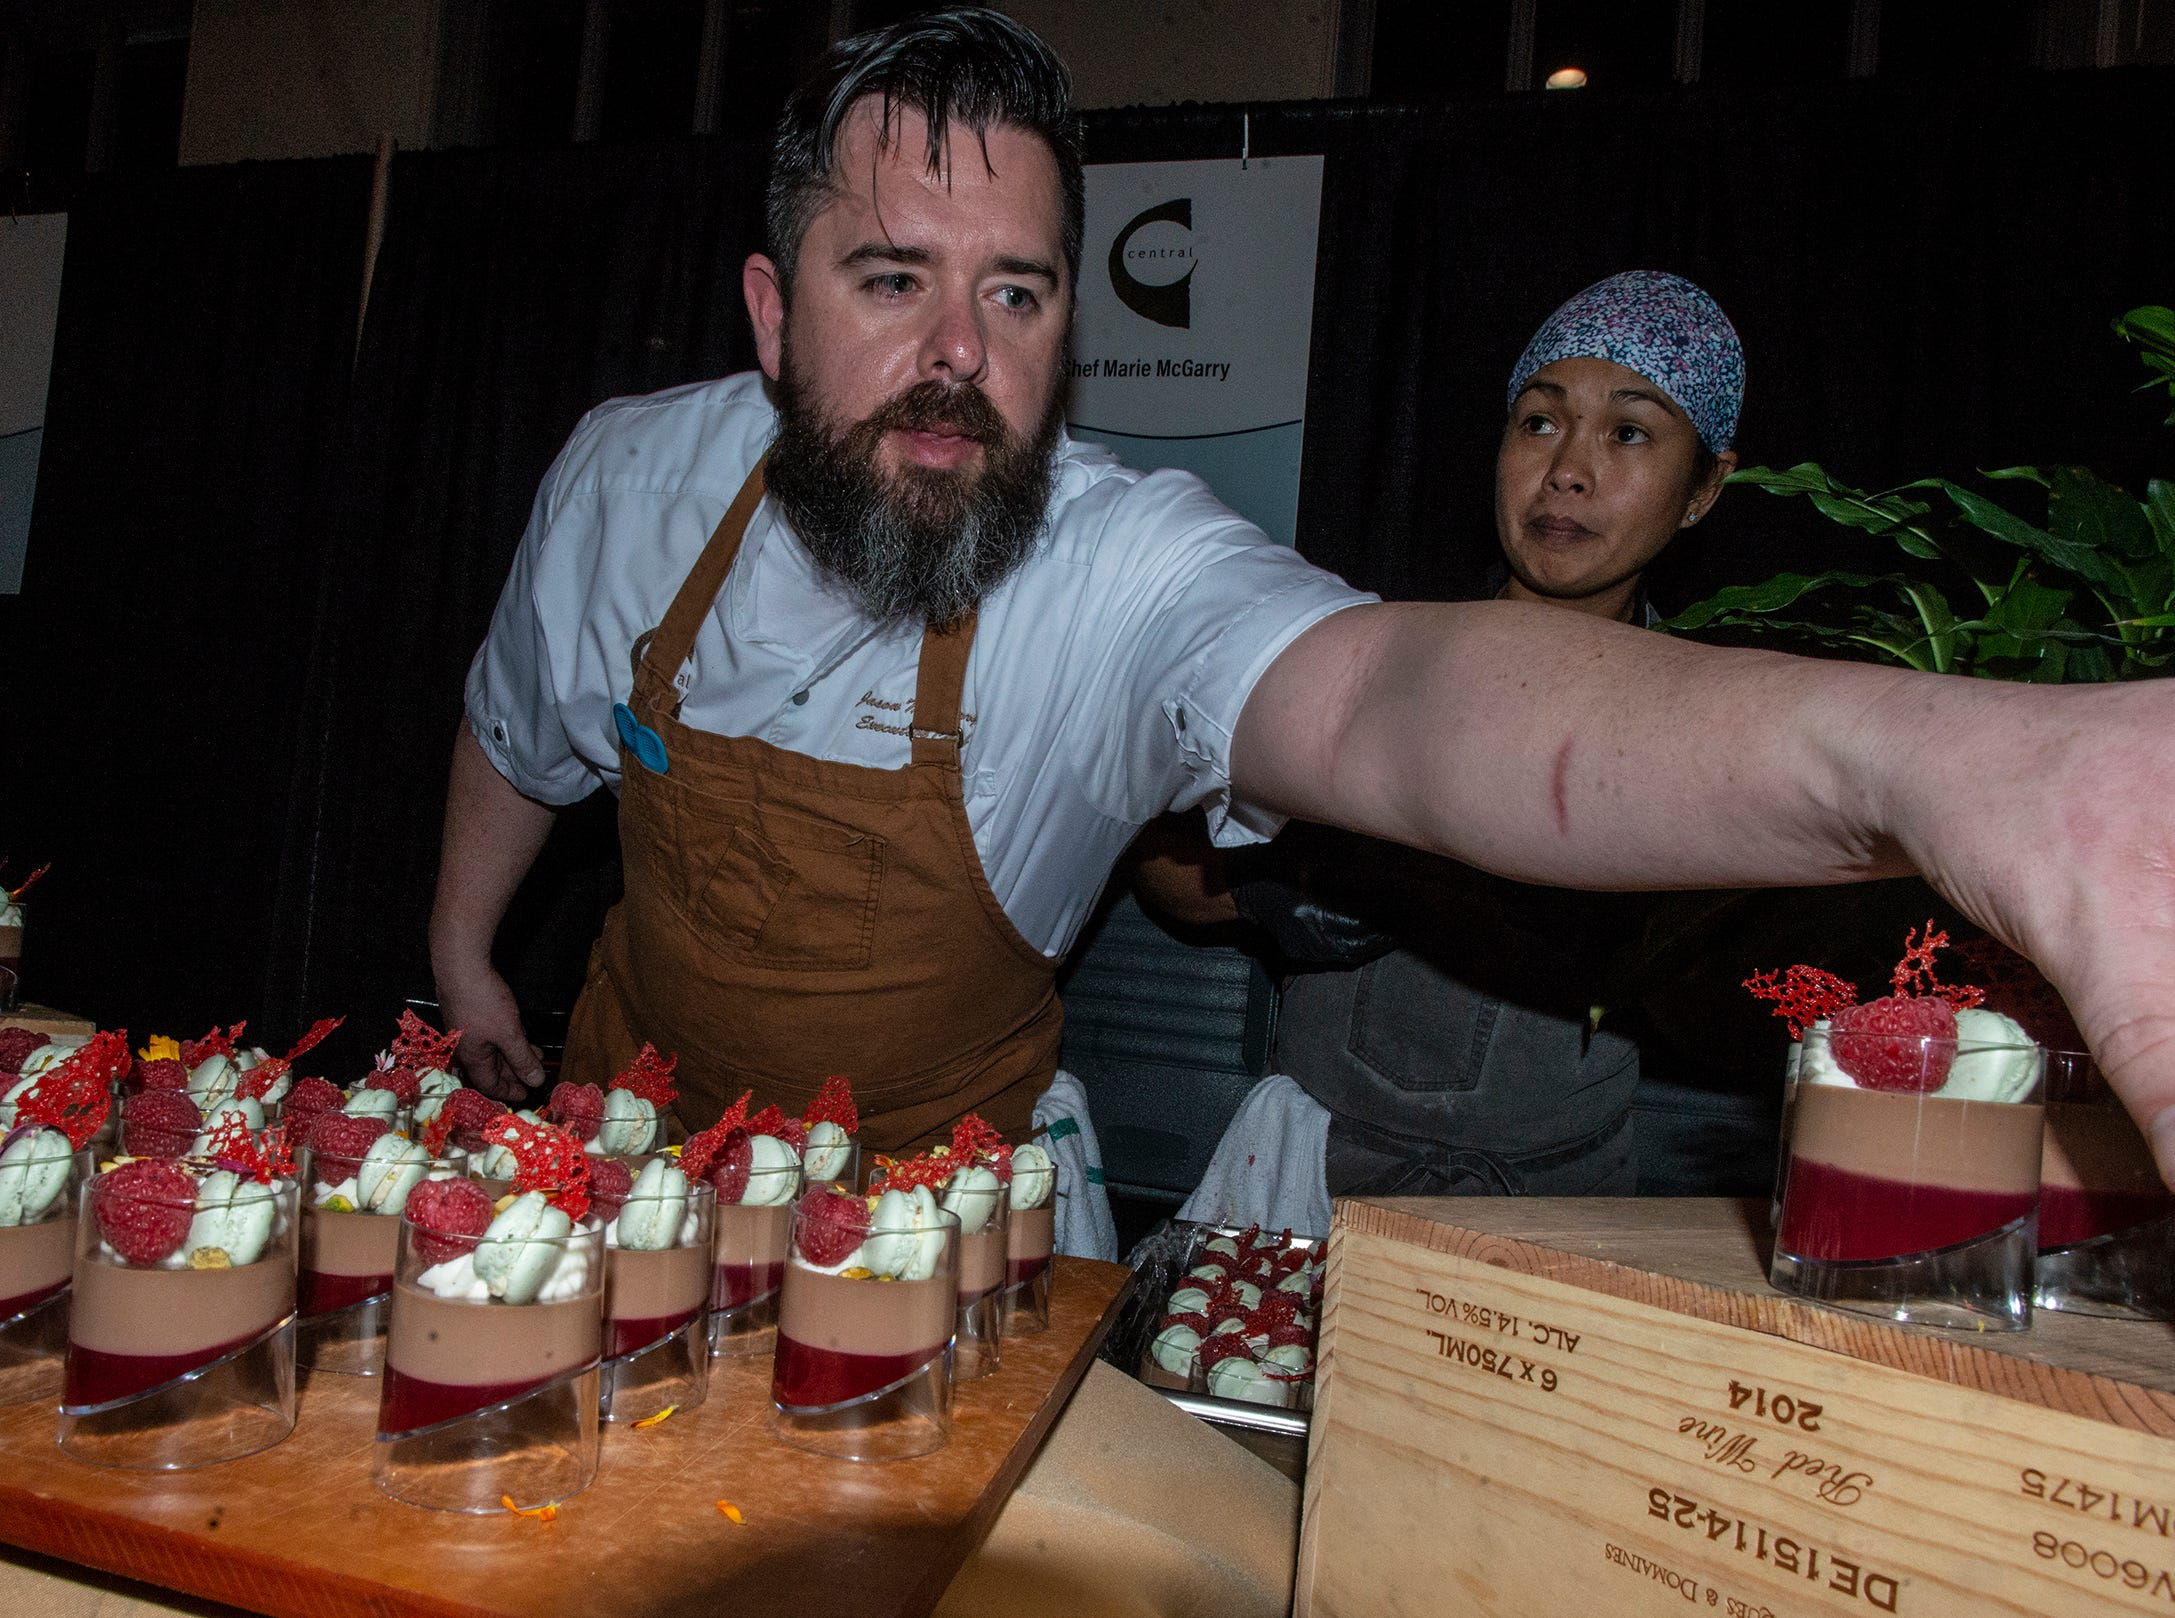 Central served Chocolate Raspberry pot de Creme for dessert. The annual Feast of Flavours was held Monday, Jan. 28, 2019, at Alabama Shakespeare Festival in Montgomery.